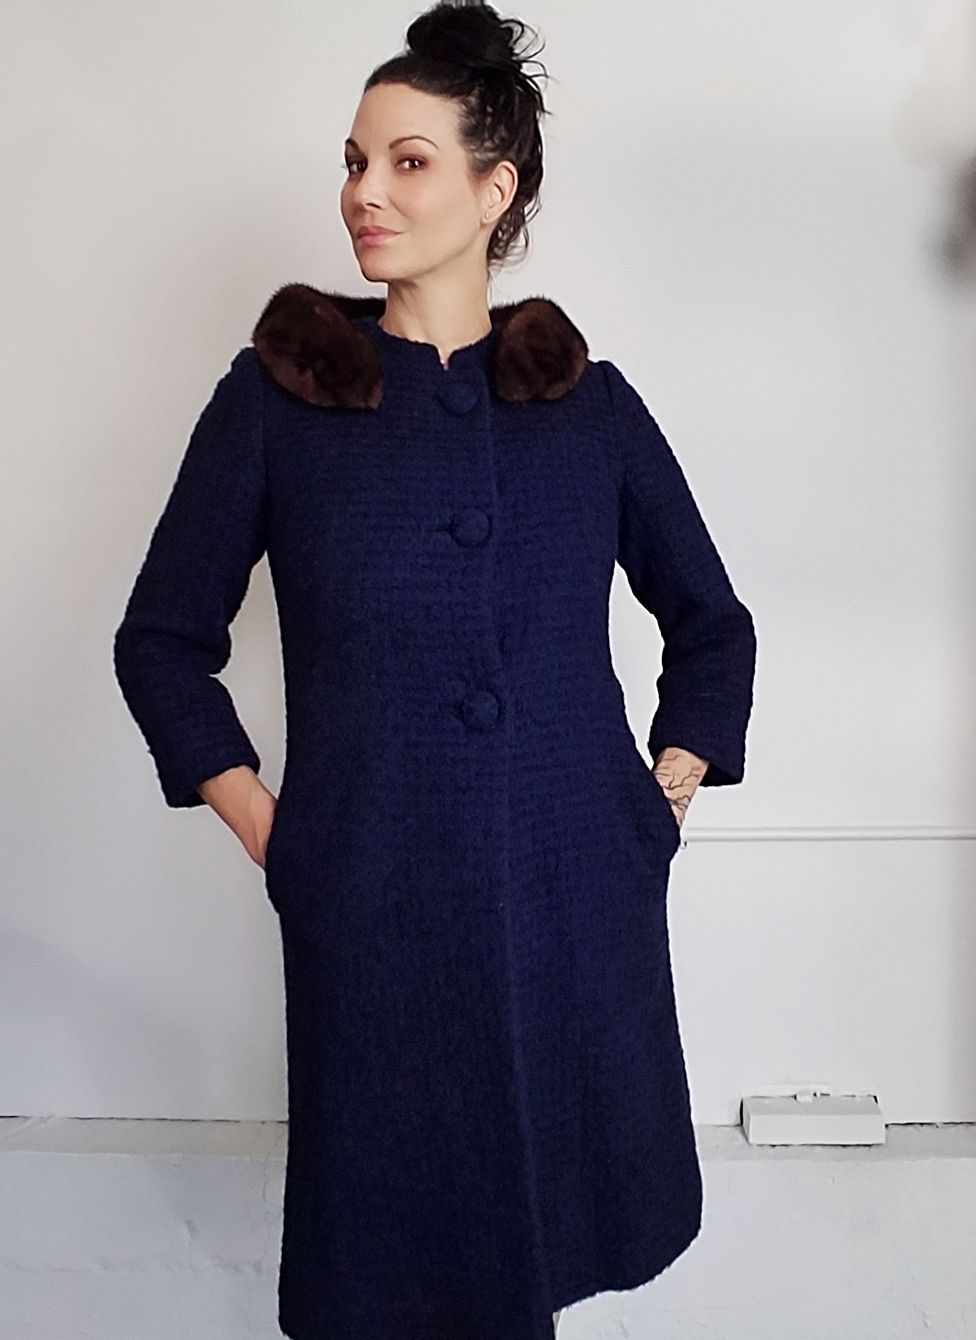 Vintage 1960s Navy Blue Wool Coat With Fur Collar